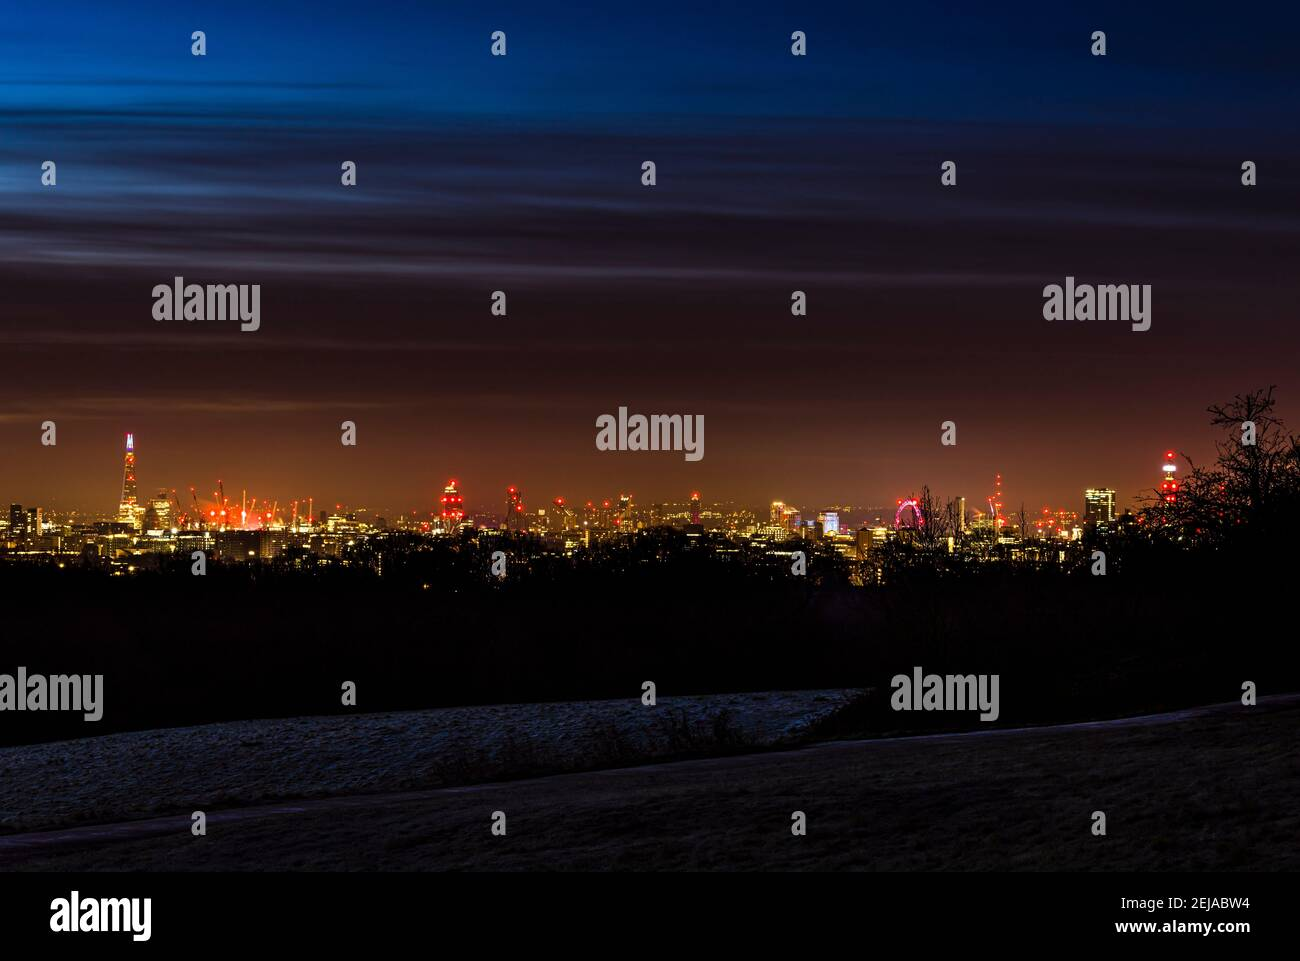 Panoramic view of London from The Shard to the BT Tower, taken at dawn from Hampstead Heath, London, UK Stock Photo